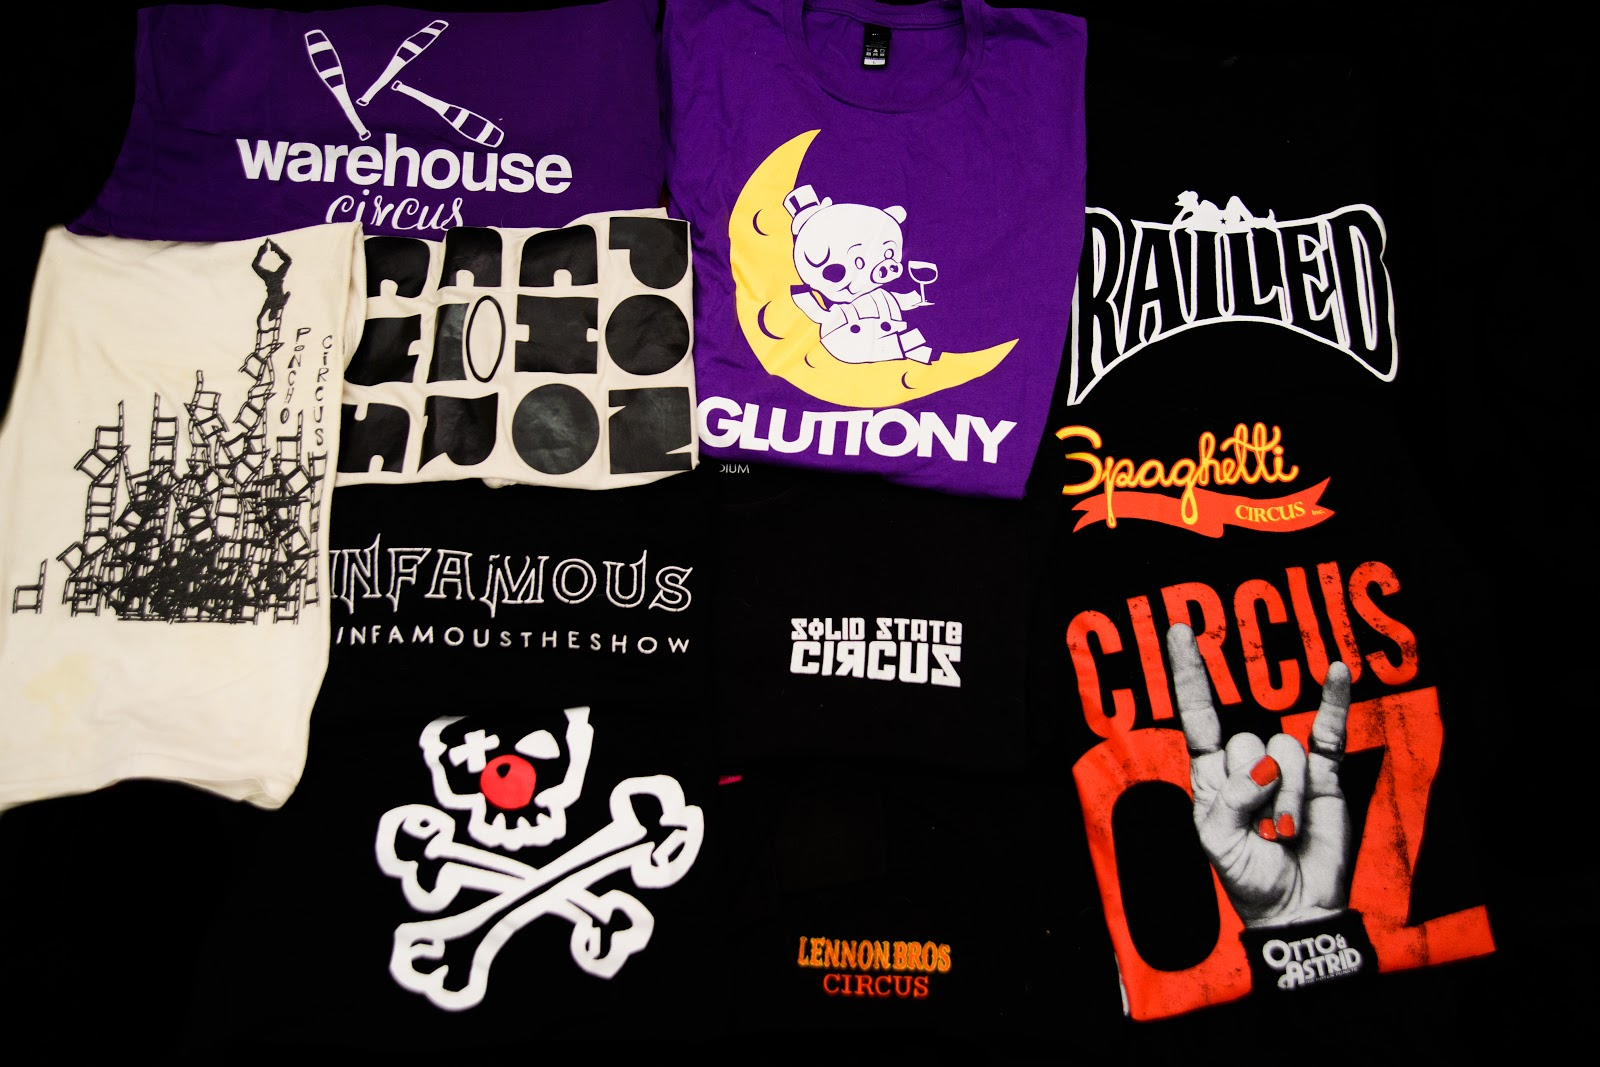 A collection of circus t-shirts is on display.